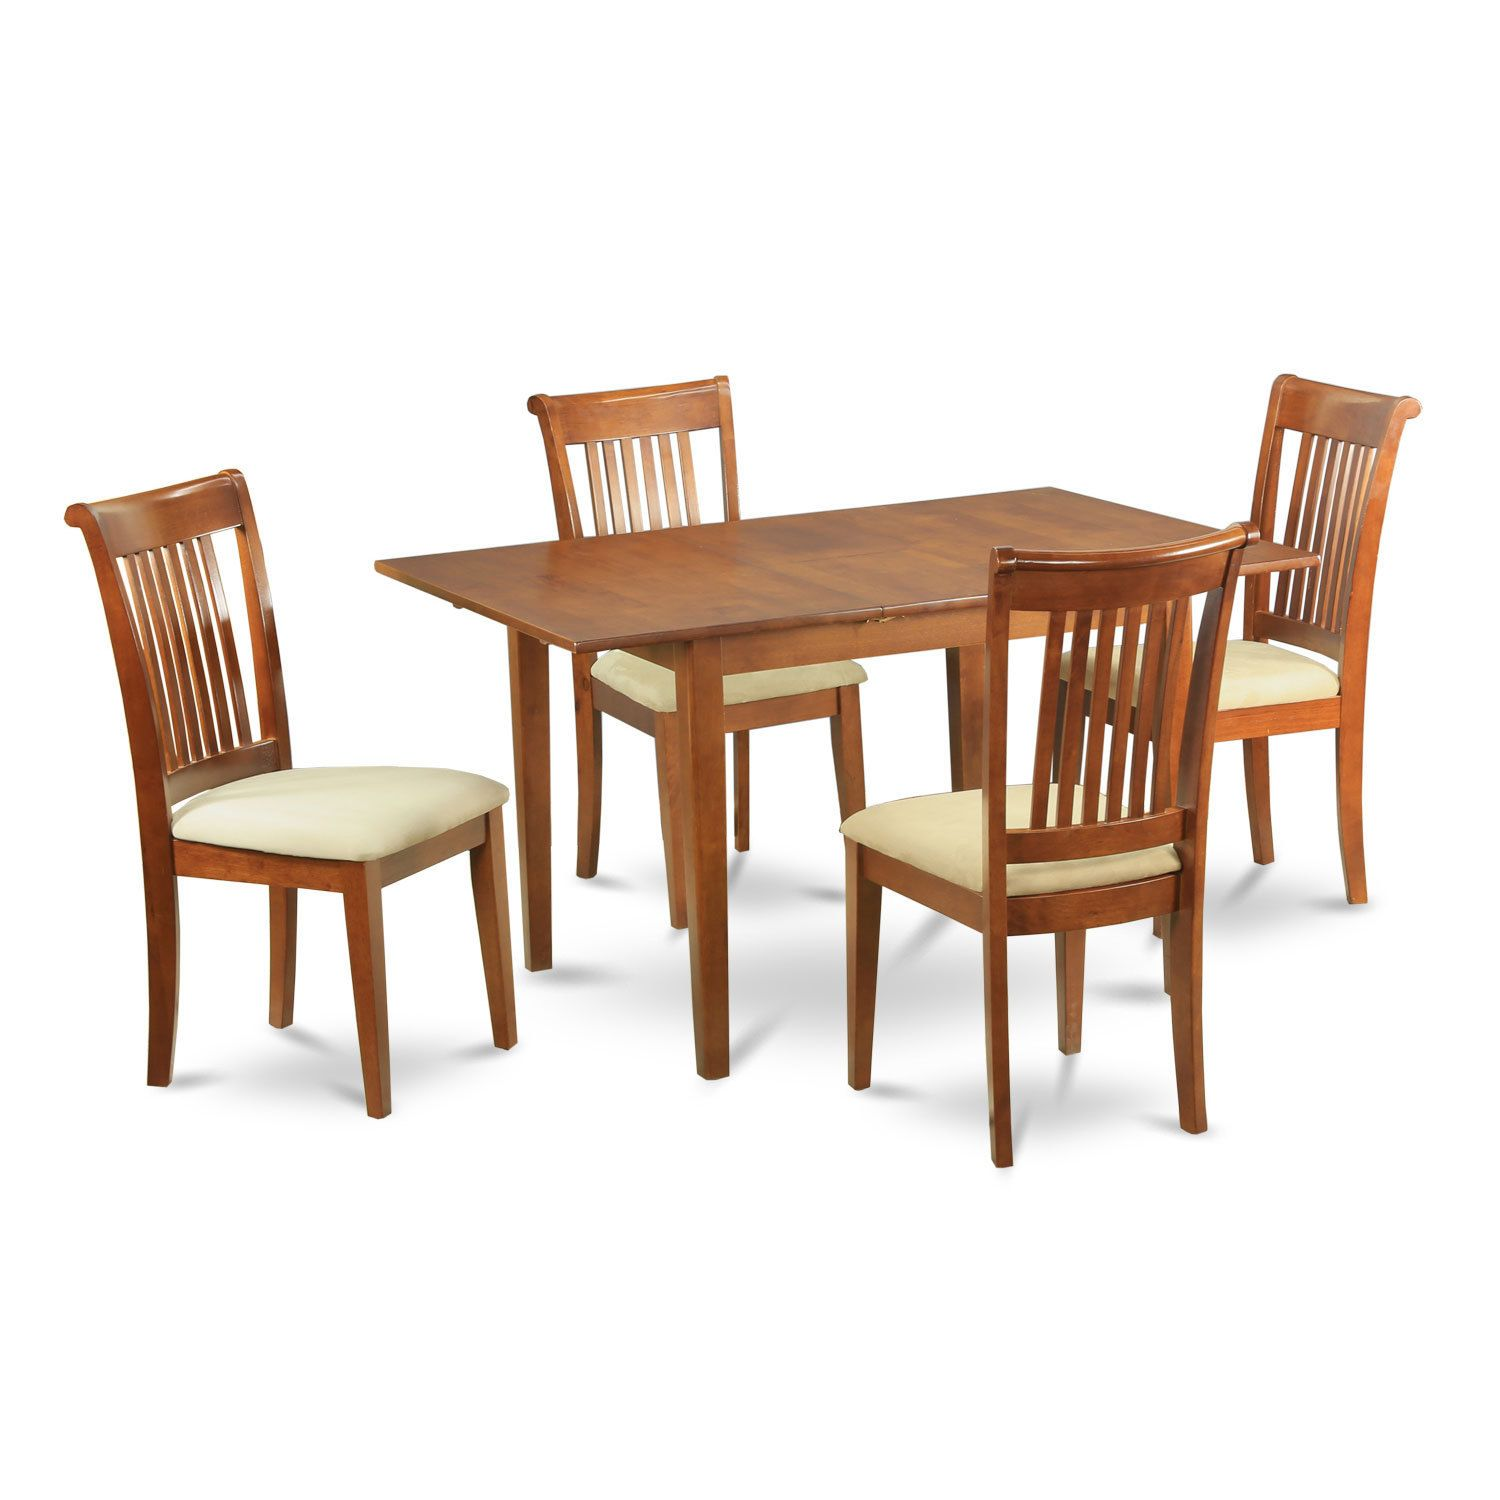 5Piece Dinette Set Small Dining Table And 4 Chairs Brown Size Custom Size Of Dining Room Table For 10 Design Ideas